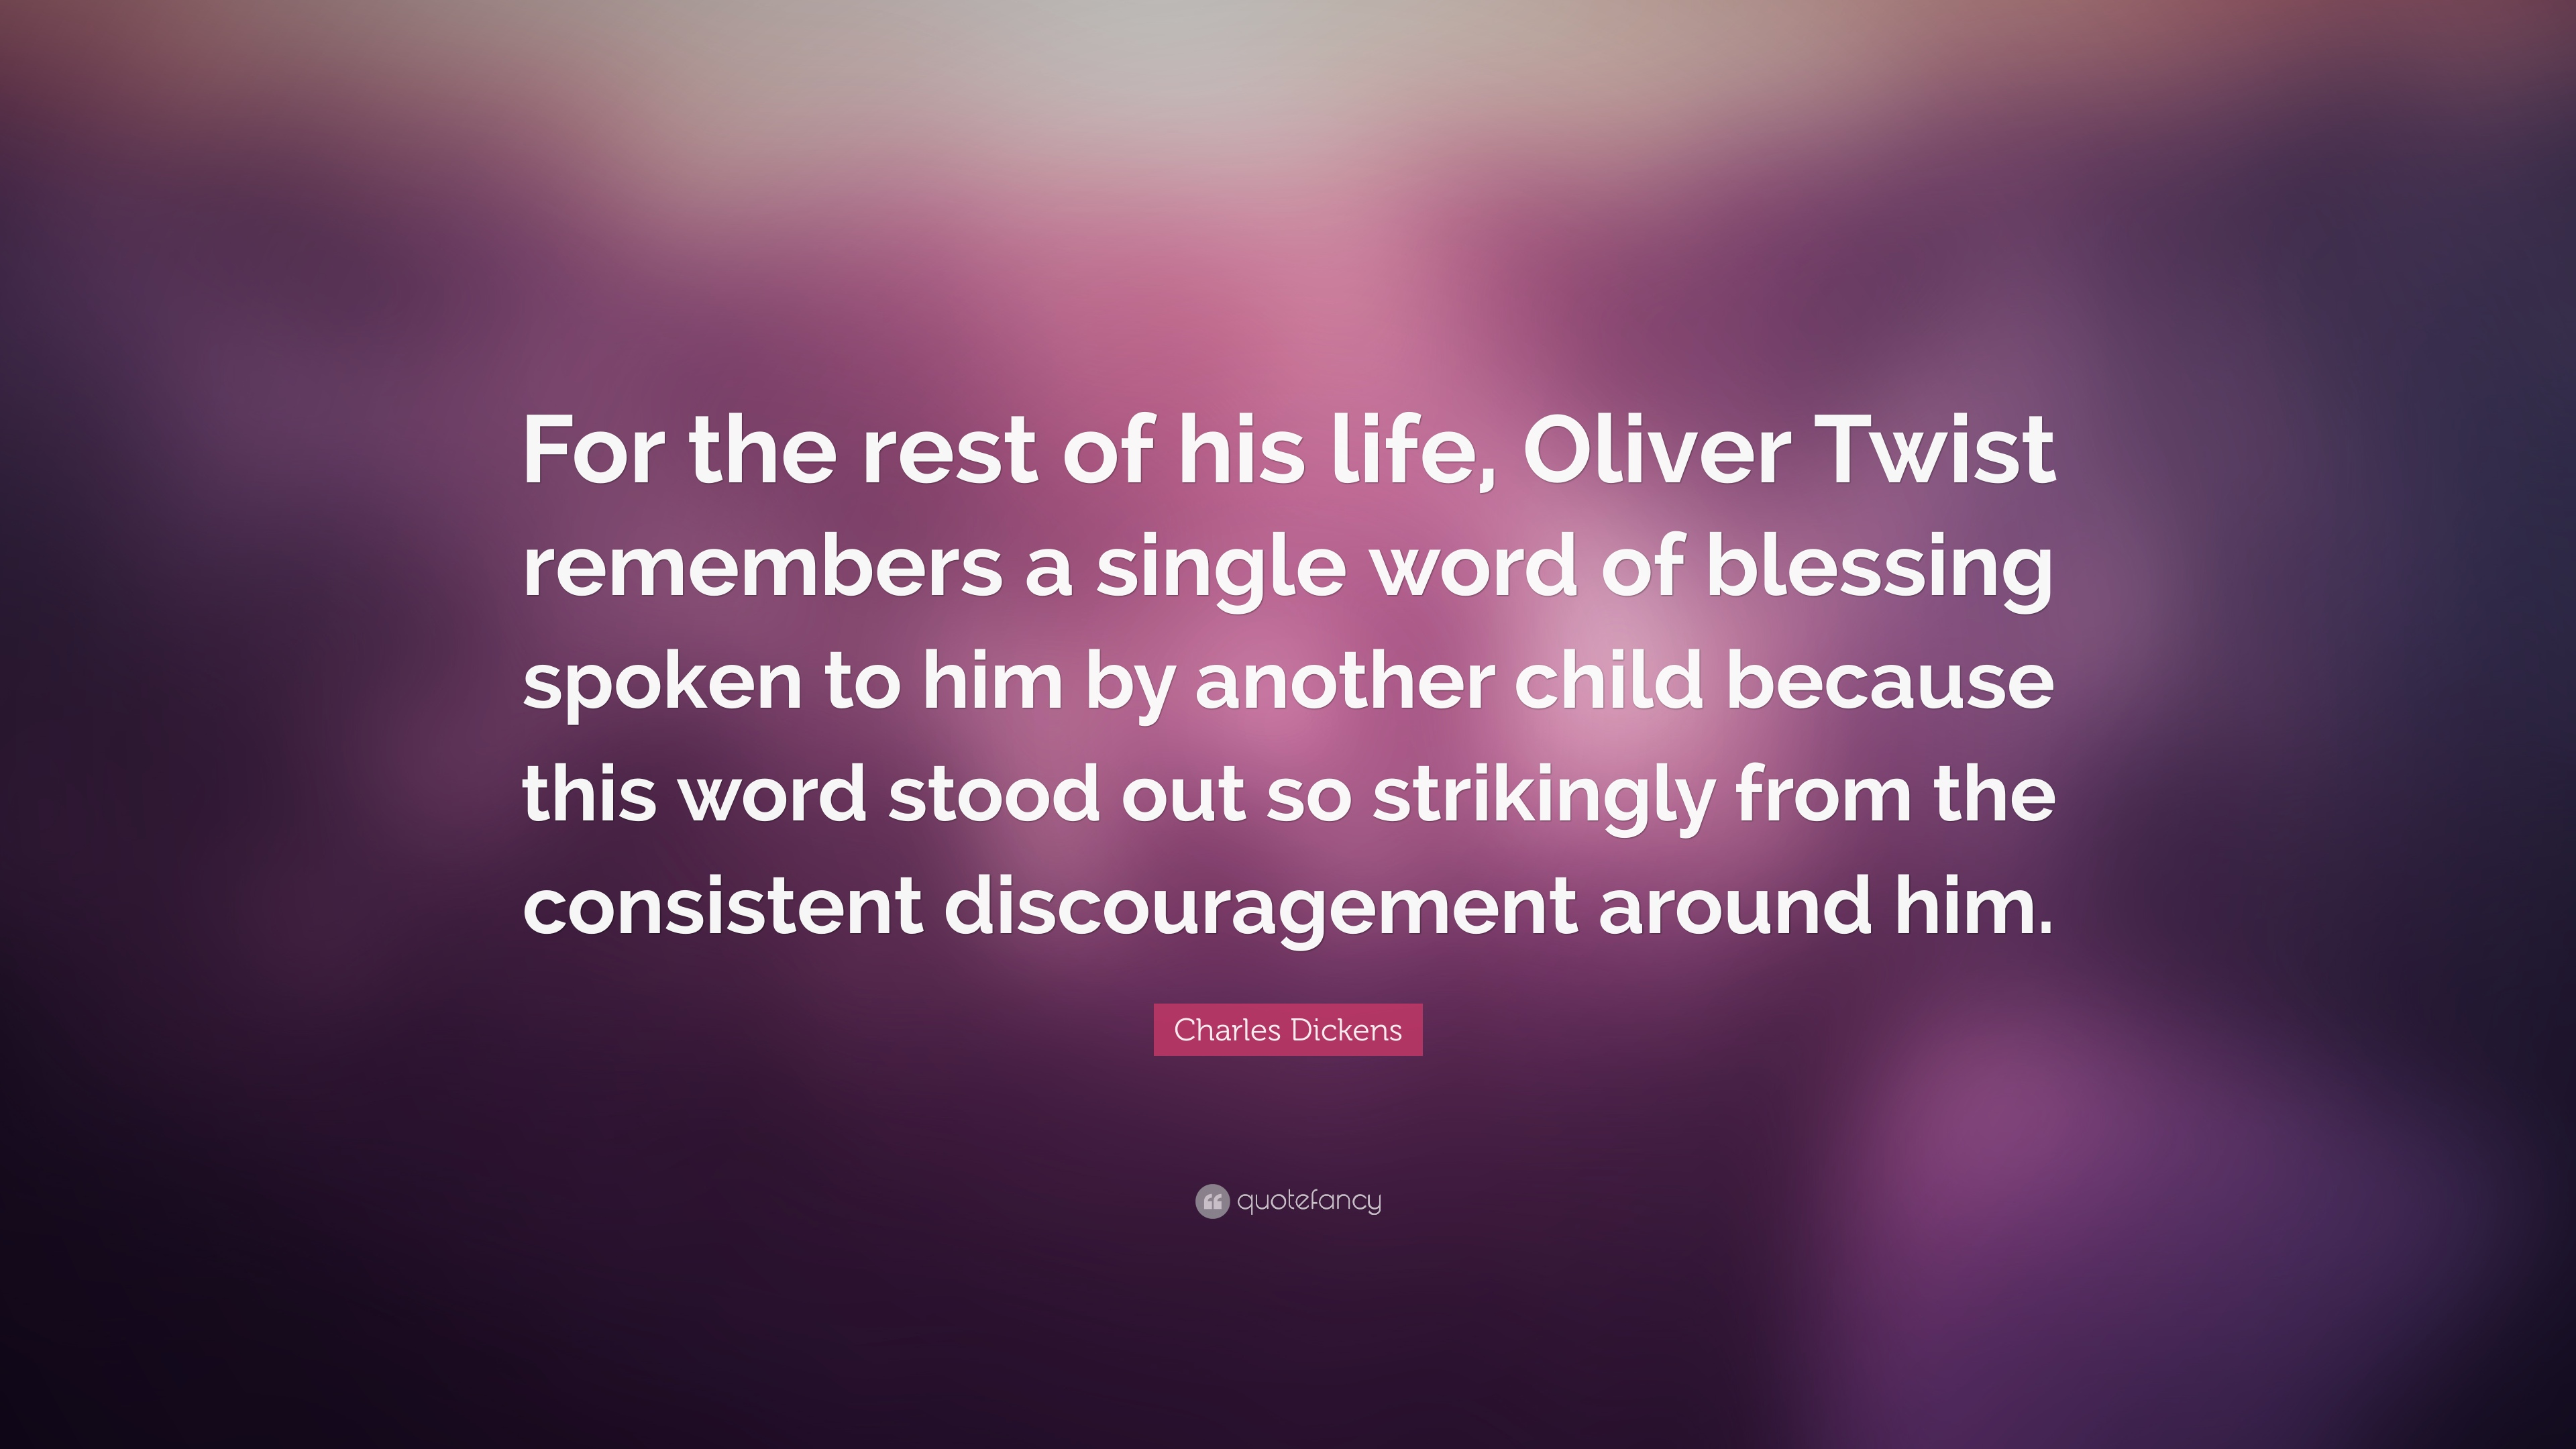 Charles Dickens Quotes Oliver Twist Twitter